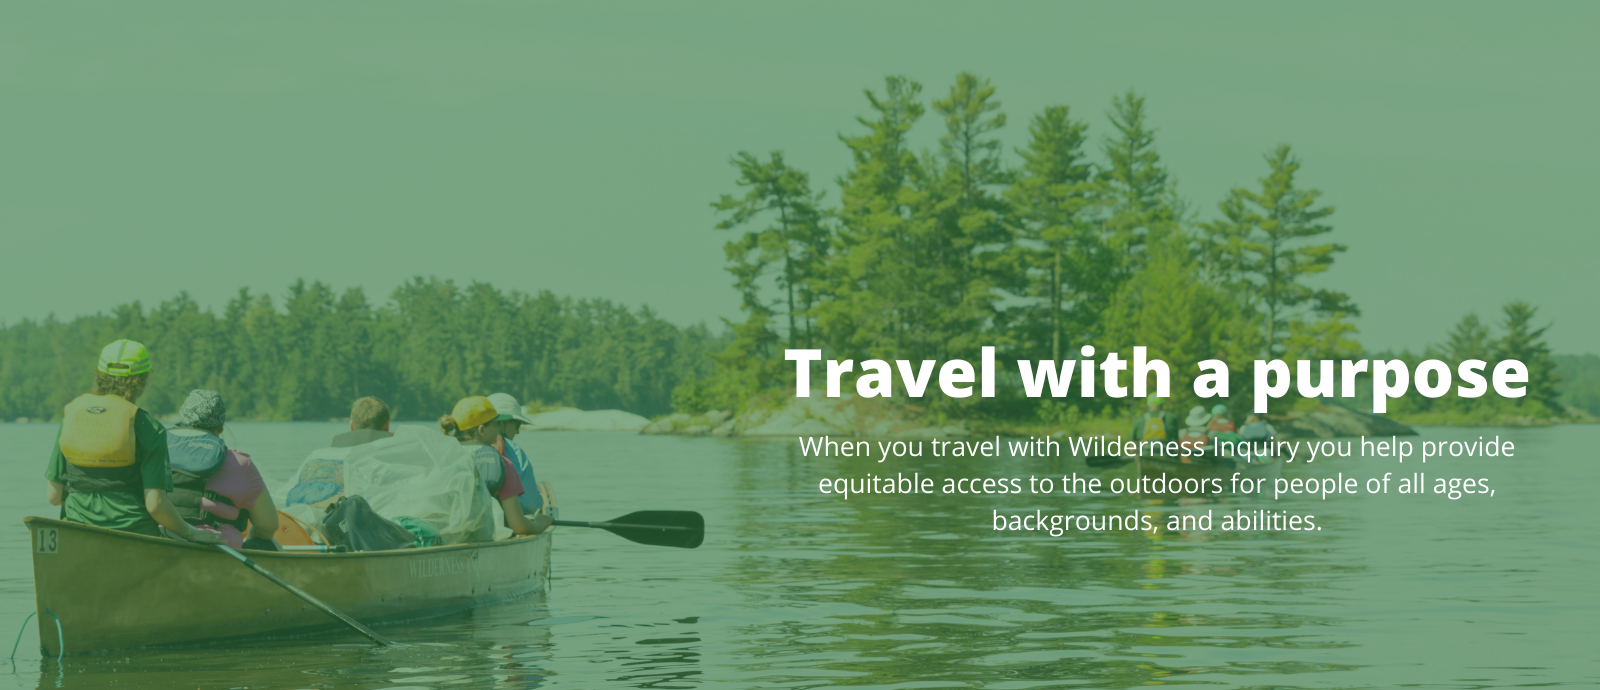 Travel with a purpose - when you travel with Wilderness Inquiry you help provide equitable access to the outdoors for people of all ages, backgrounds, and abilities